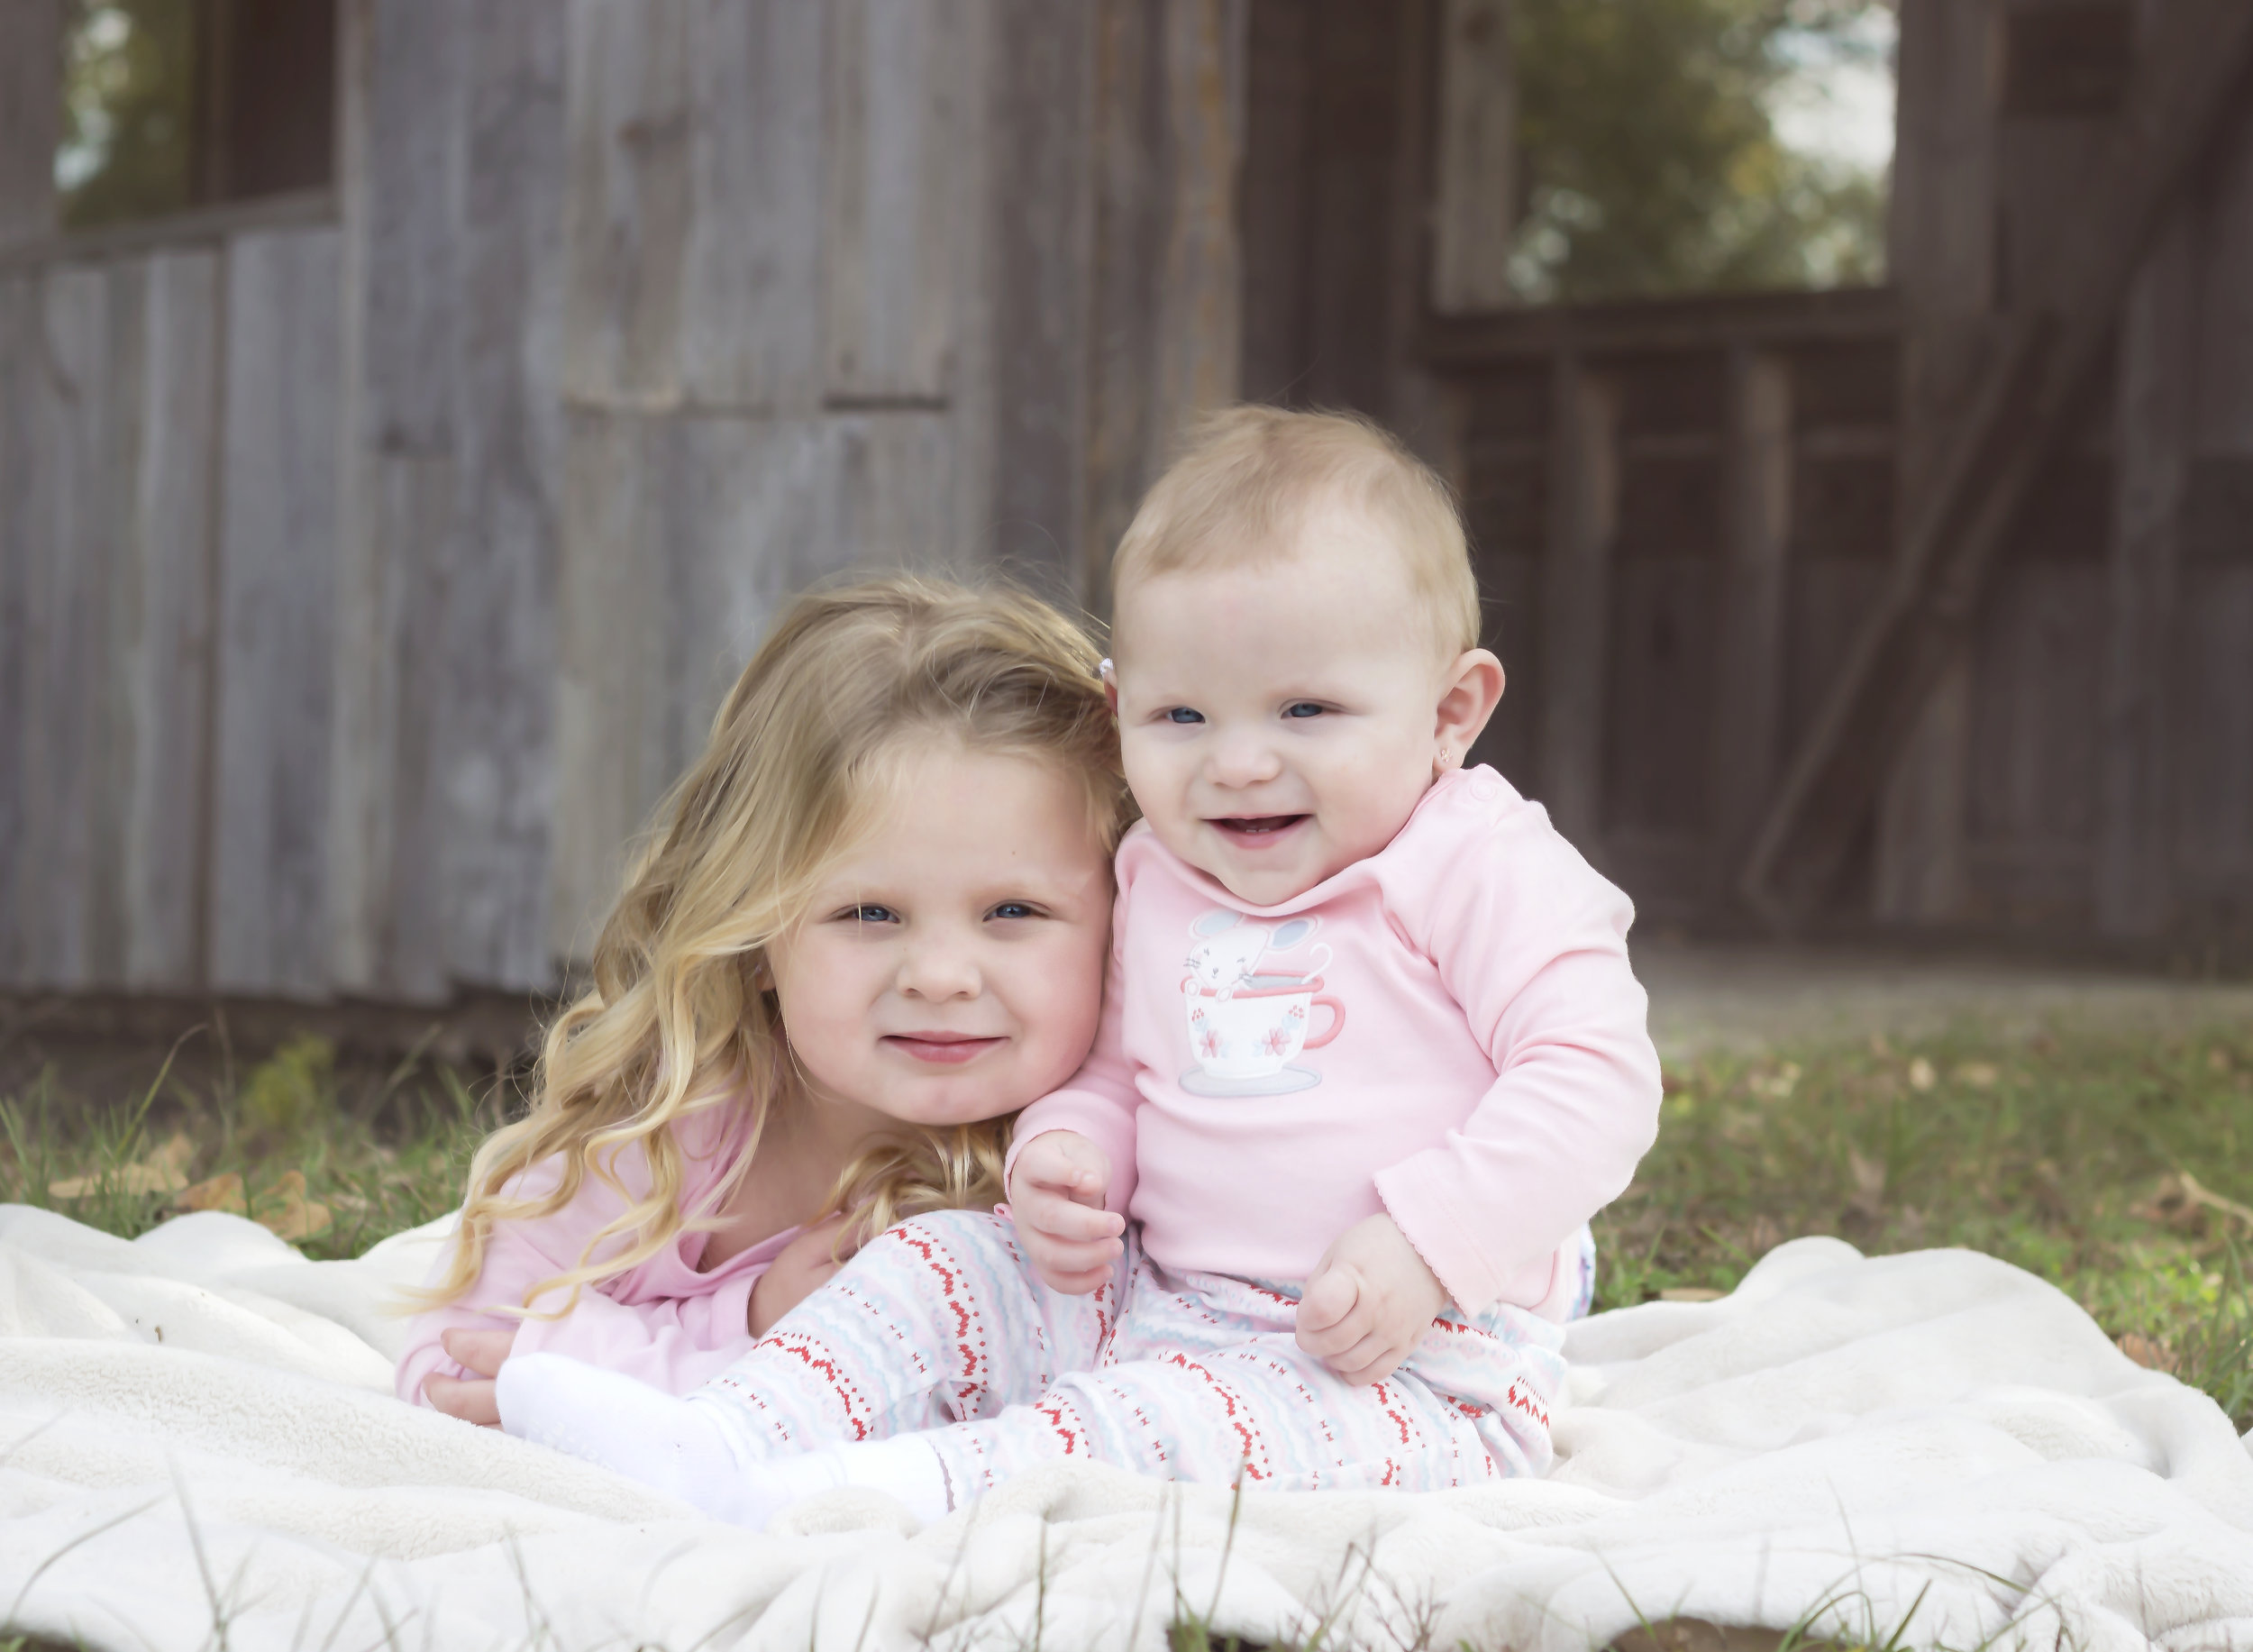 Avrey and Sister Zoey 2015